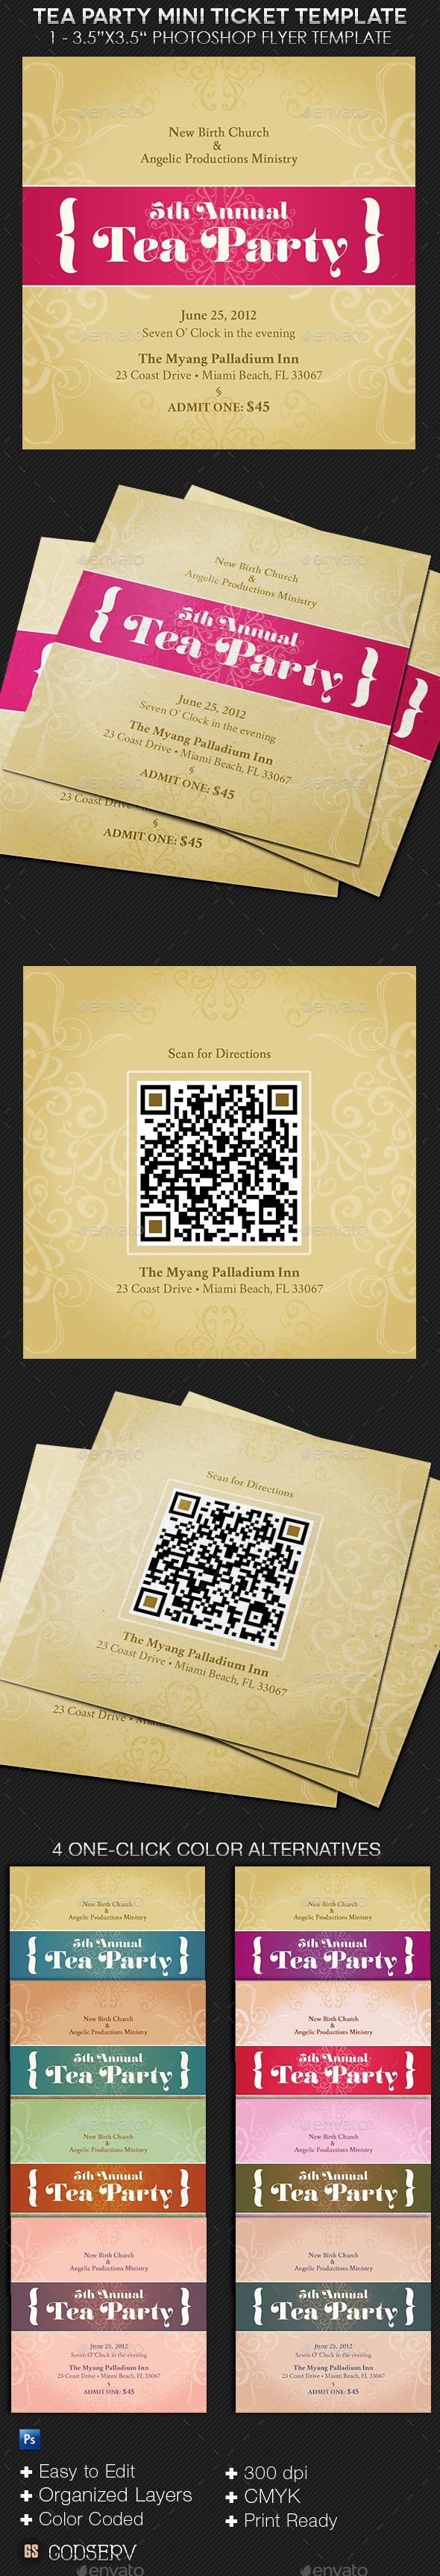 raffle ticket template word templates download free ms review – Microsoft Office Raffle Ticket Template